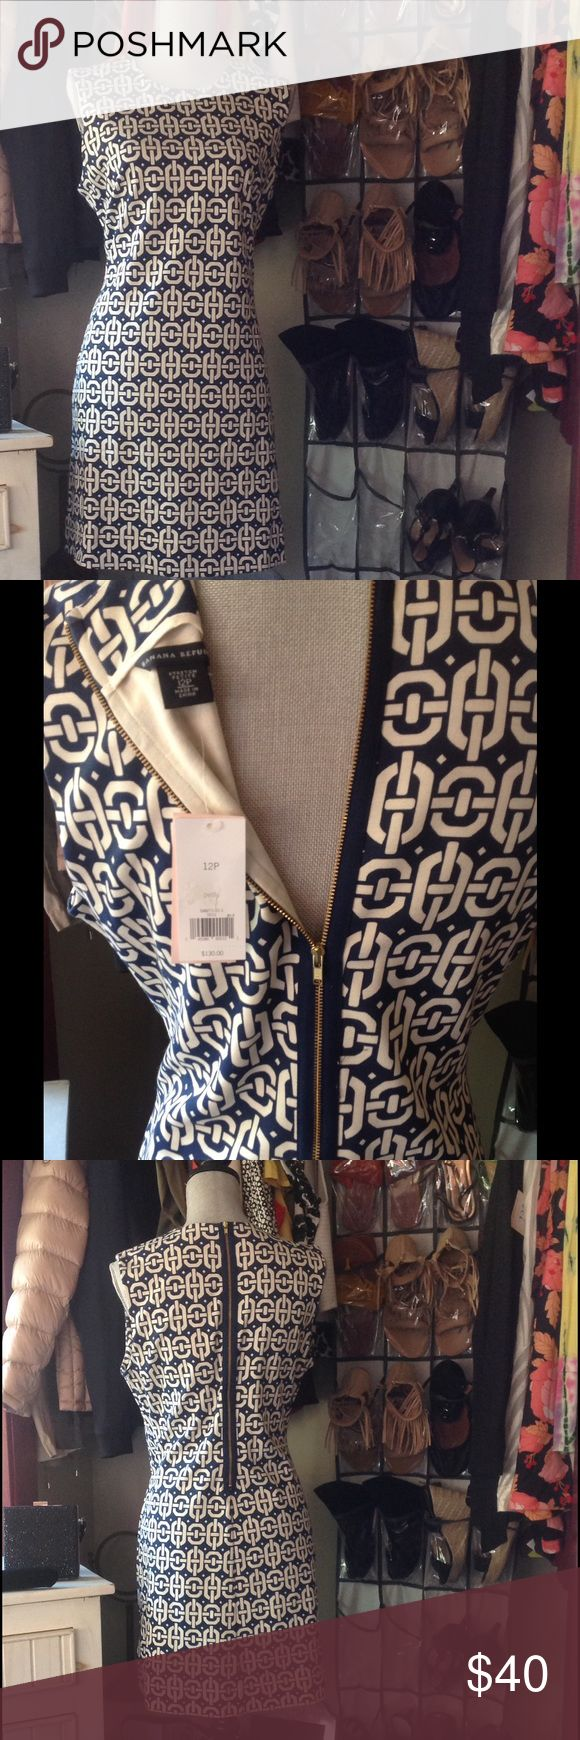 """NWT Banana Republic Sleeveless Petite sized Dress! Navy and White brand new with tags. Back zipper in Navy with gold hardware. Flawless! At knee length for a petite person. I'm 5""""2. Great for work or play. Dress it up or down. Banana Republic Dresses"""